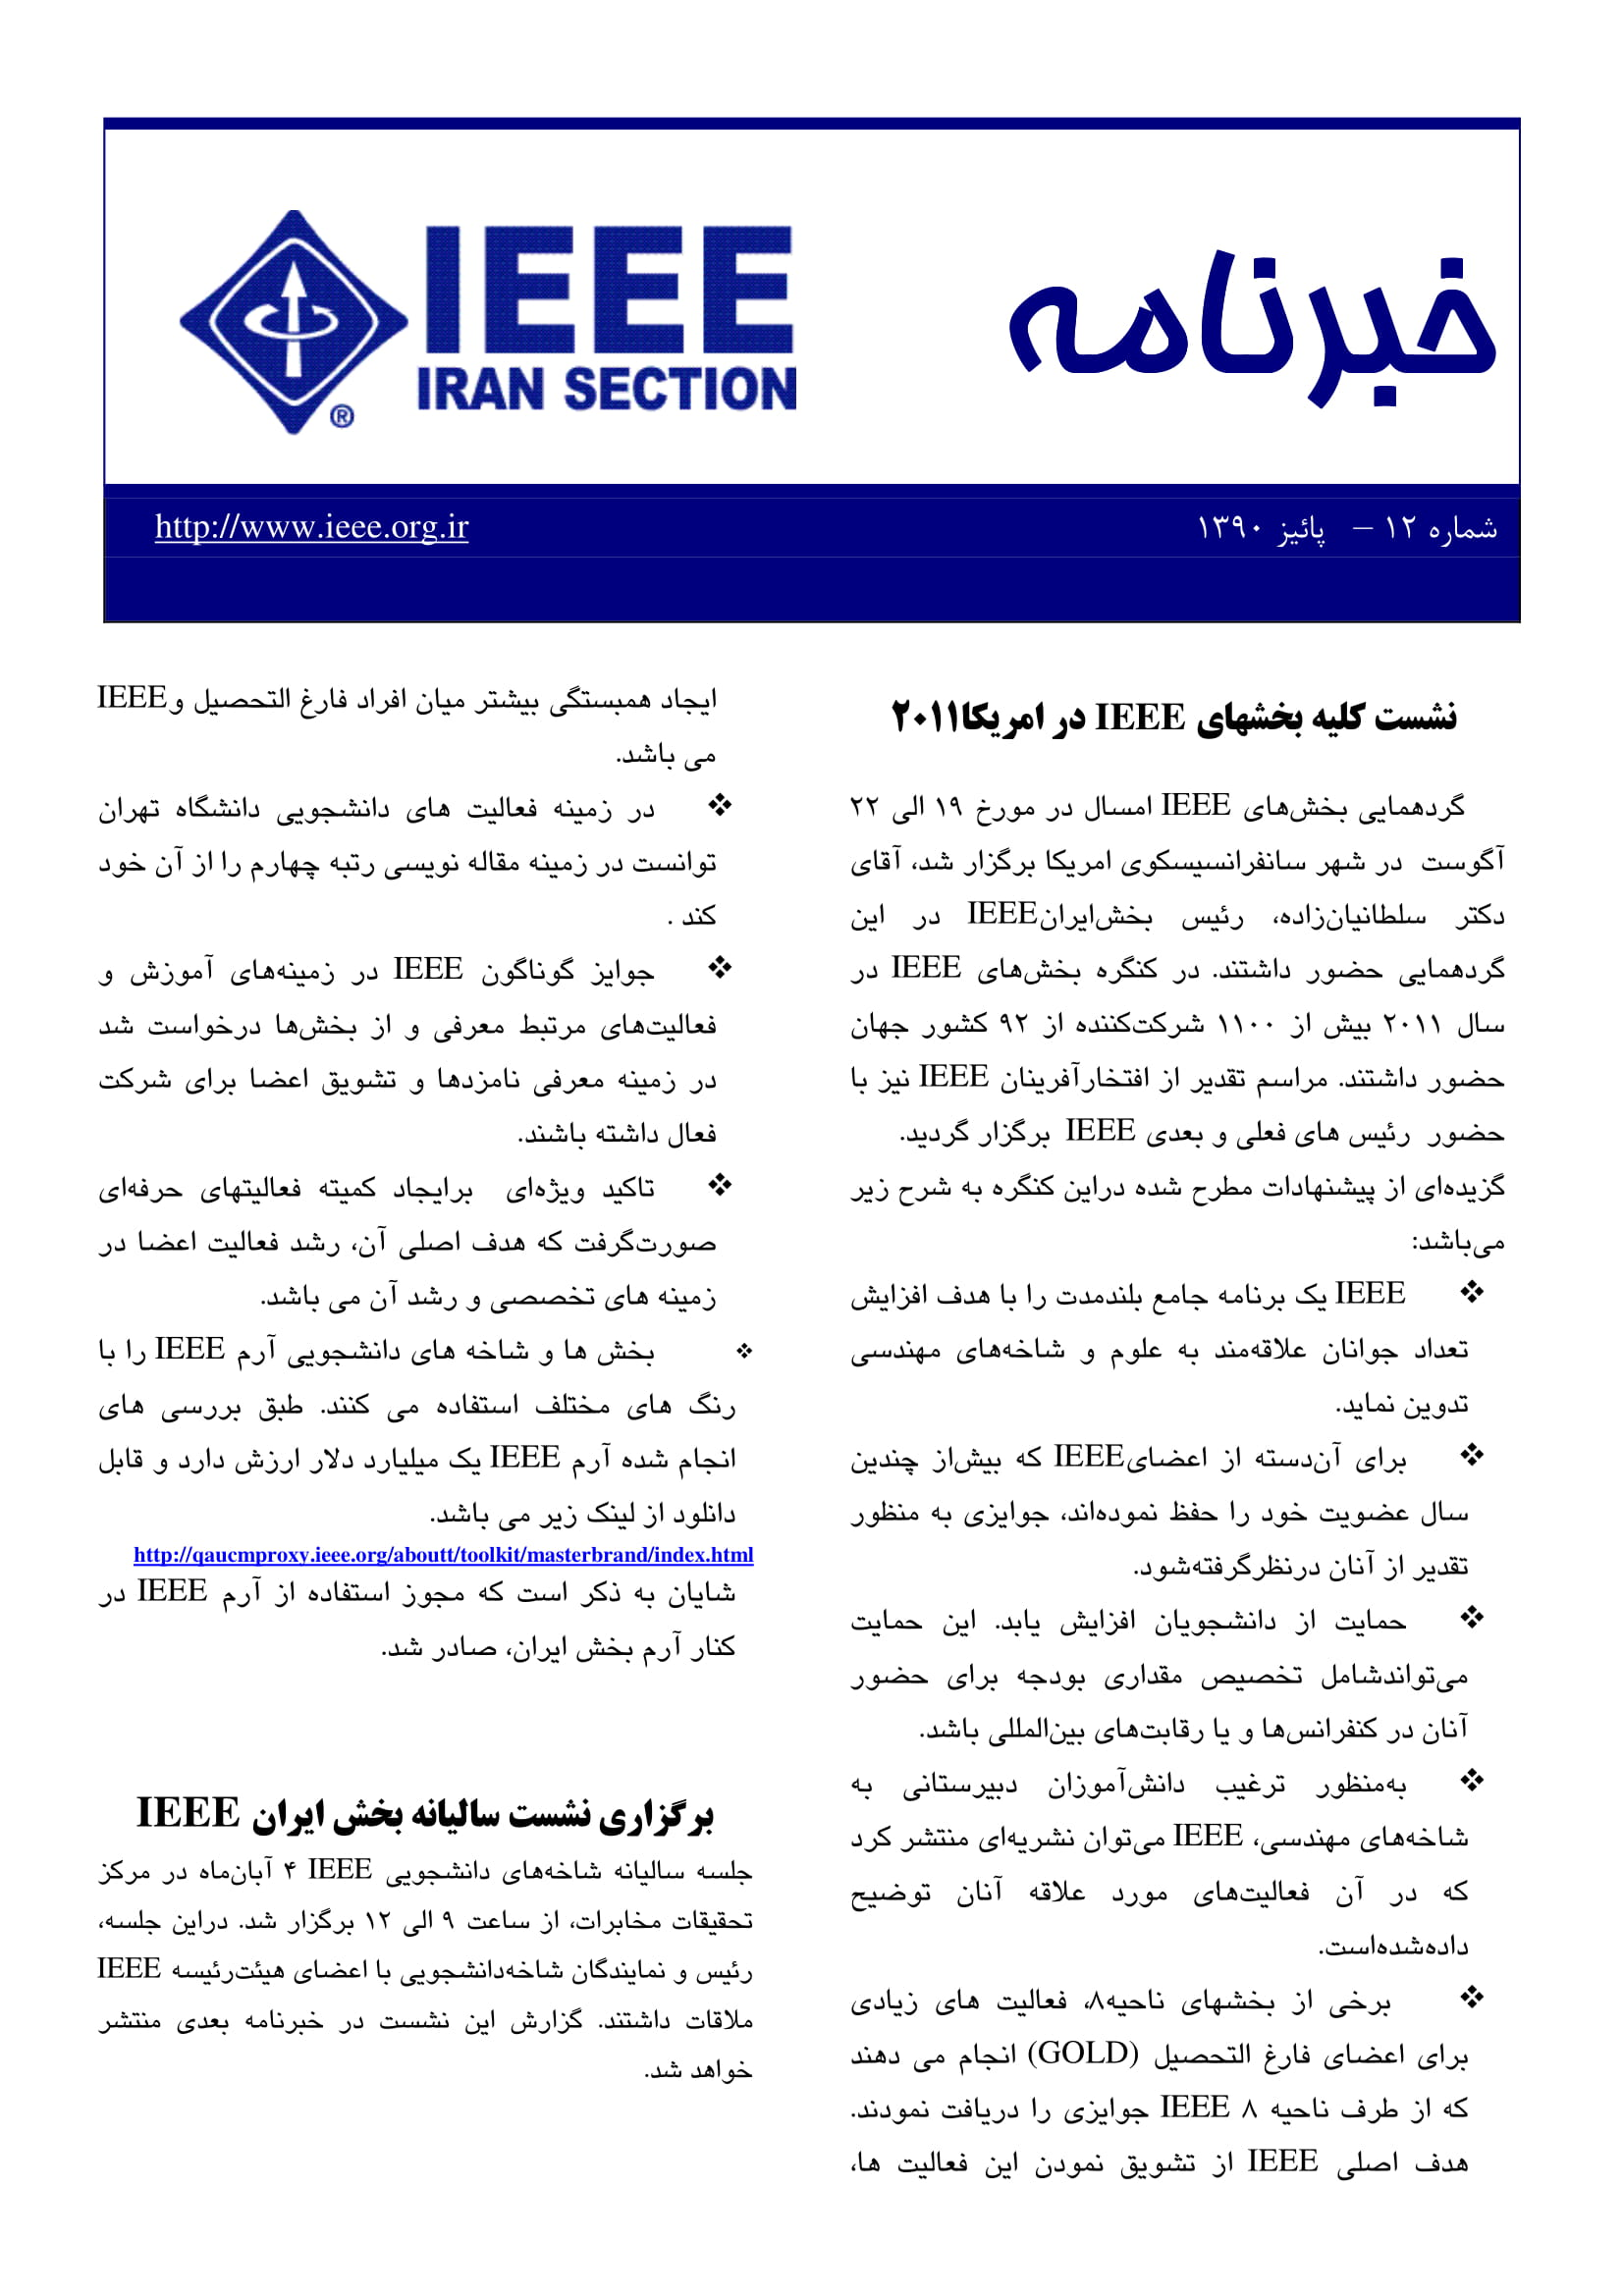 IEEE-Iran-Section_Newsletter_Fall_1390_No.12-1